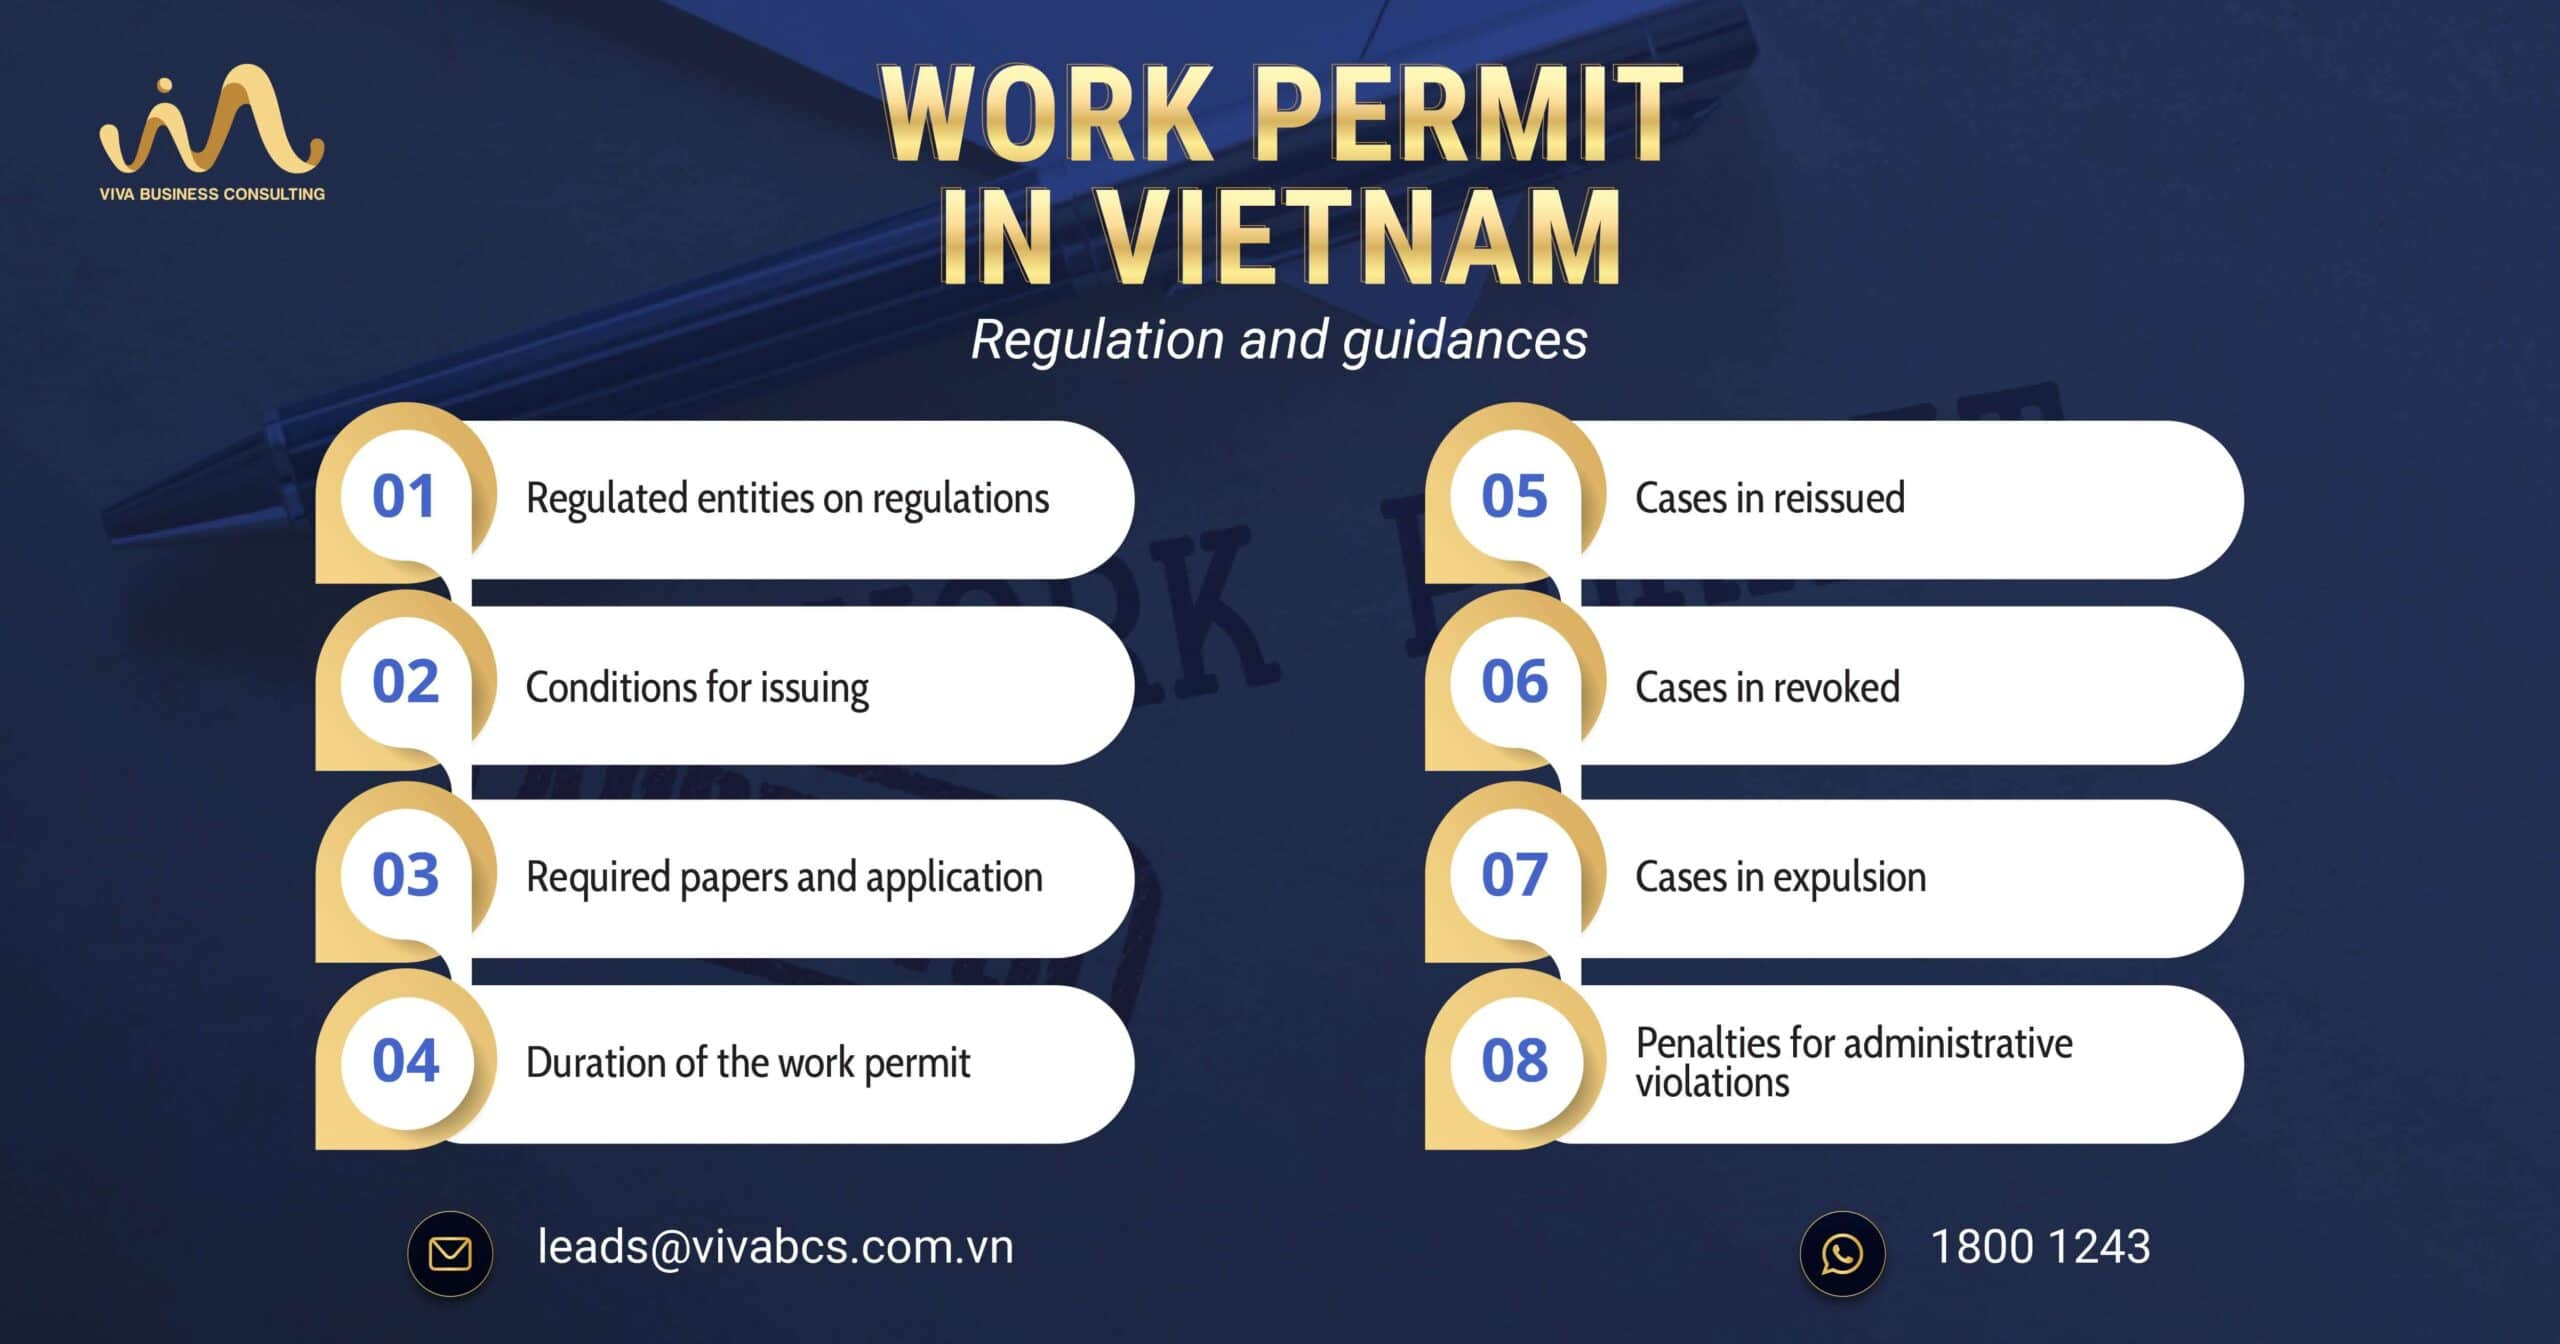 Work Permit in Vietnam - Regulations and Guidances